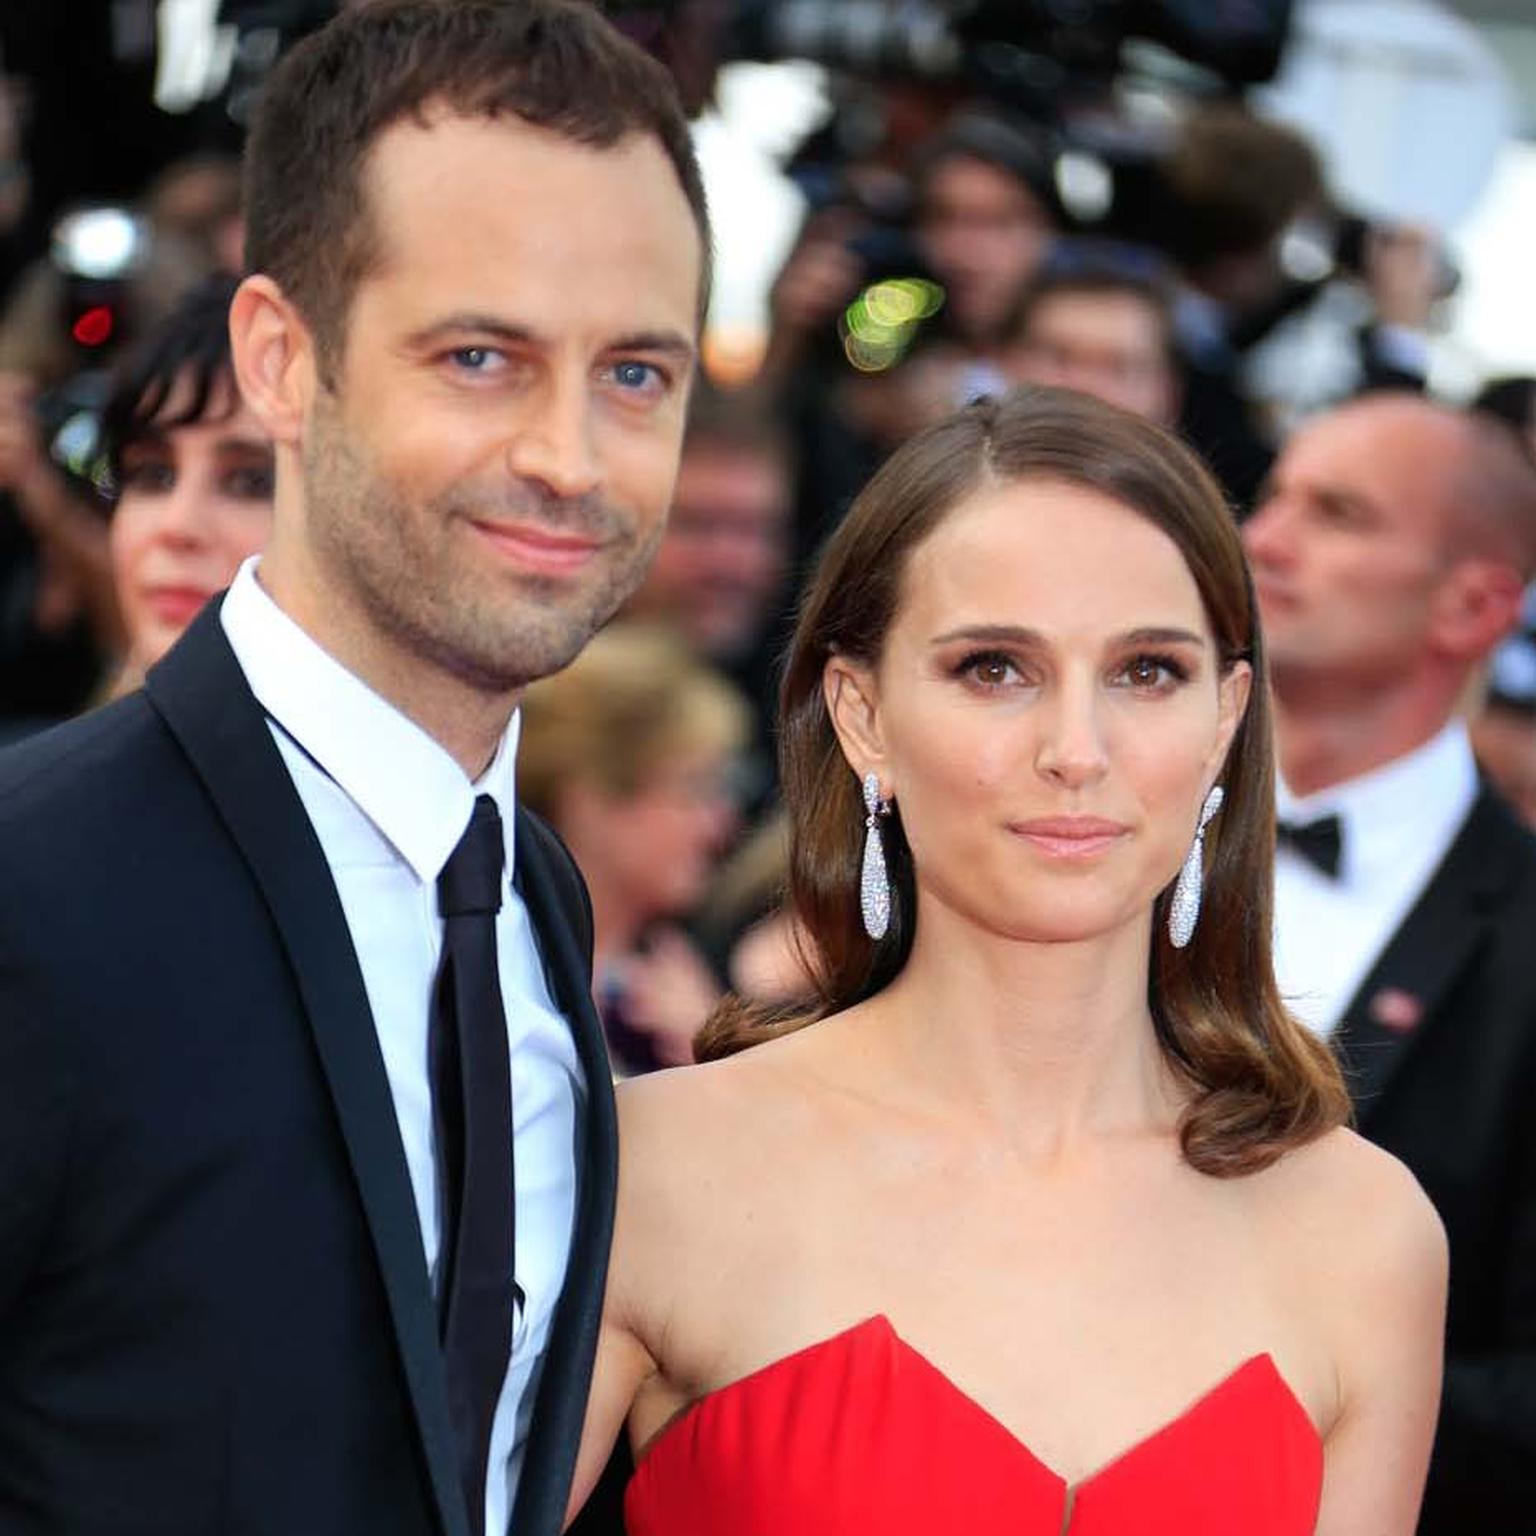 Natalie Portman pictured alongside her husband, Benjamin Millepied, wearing teardrop-shaped diamond Gocce earrings by de GRISOGONO.